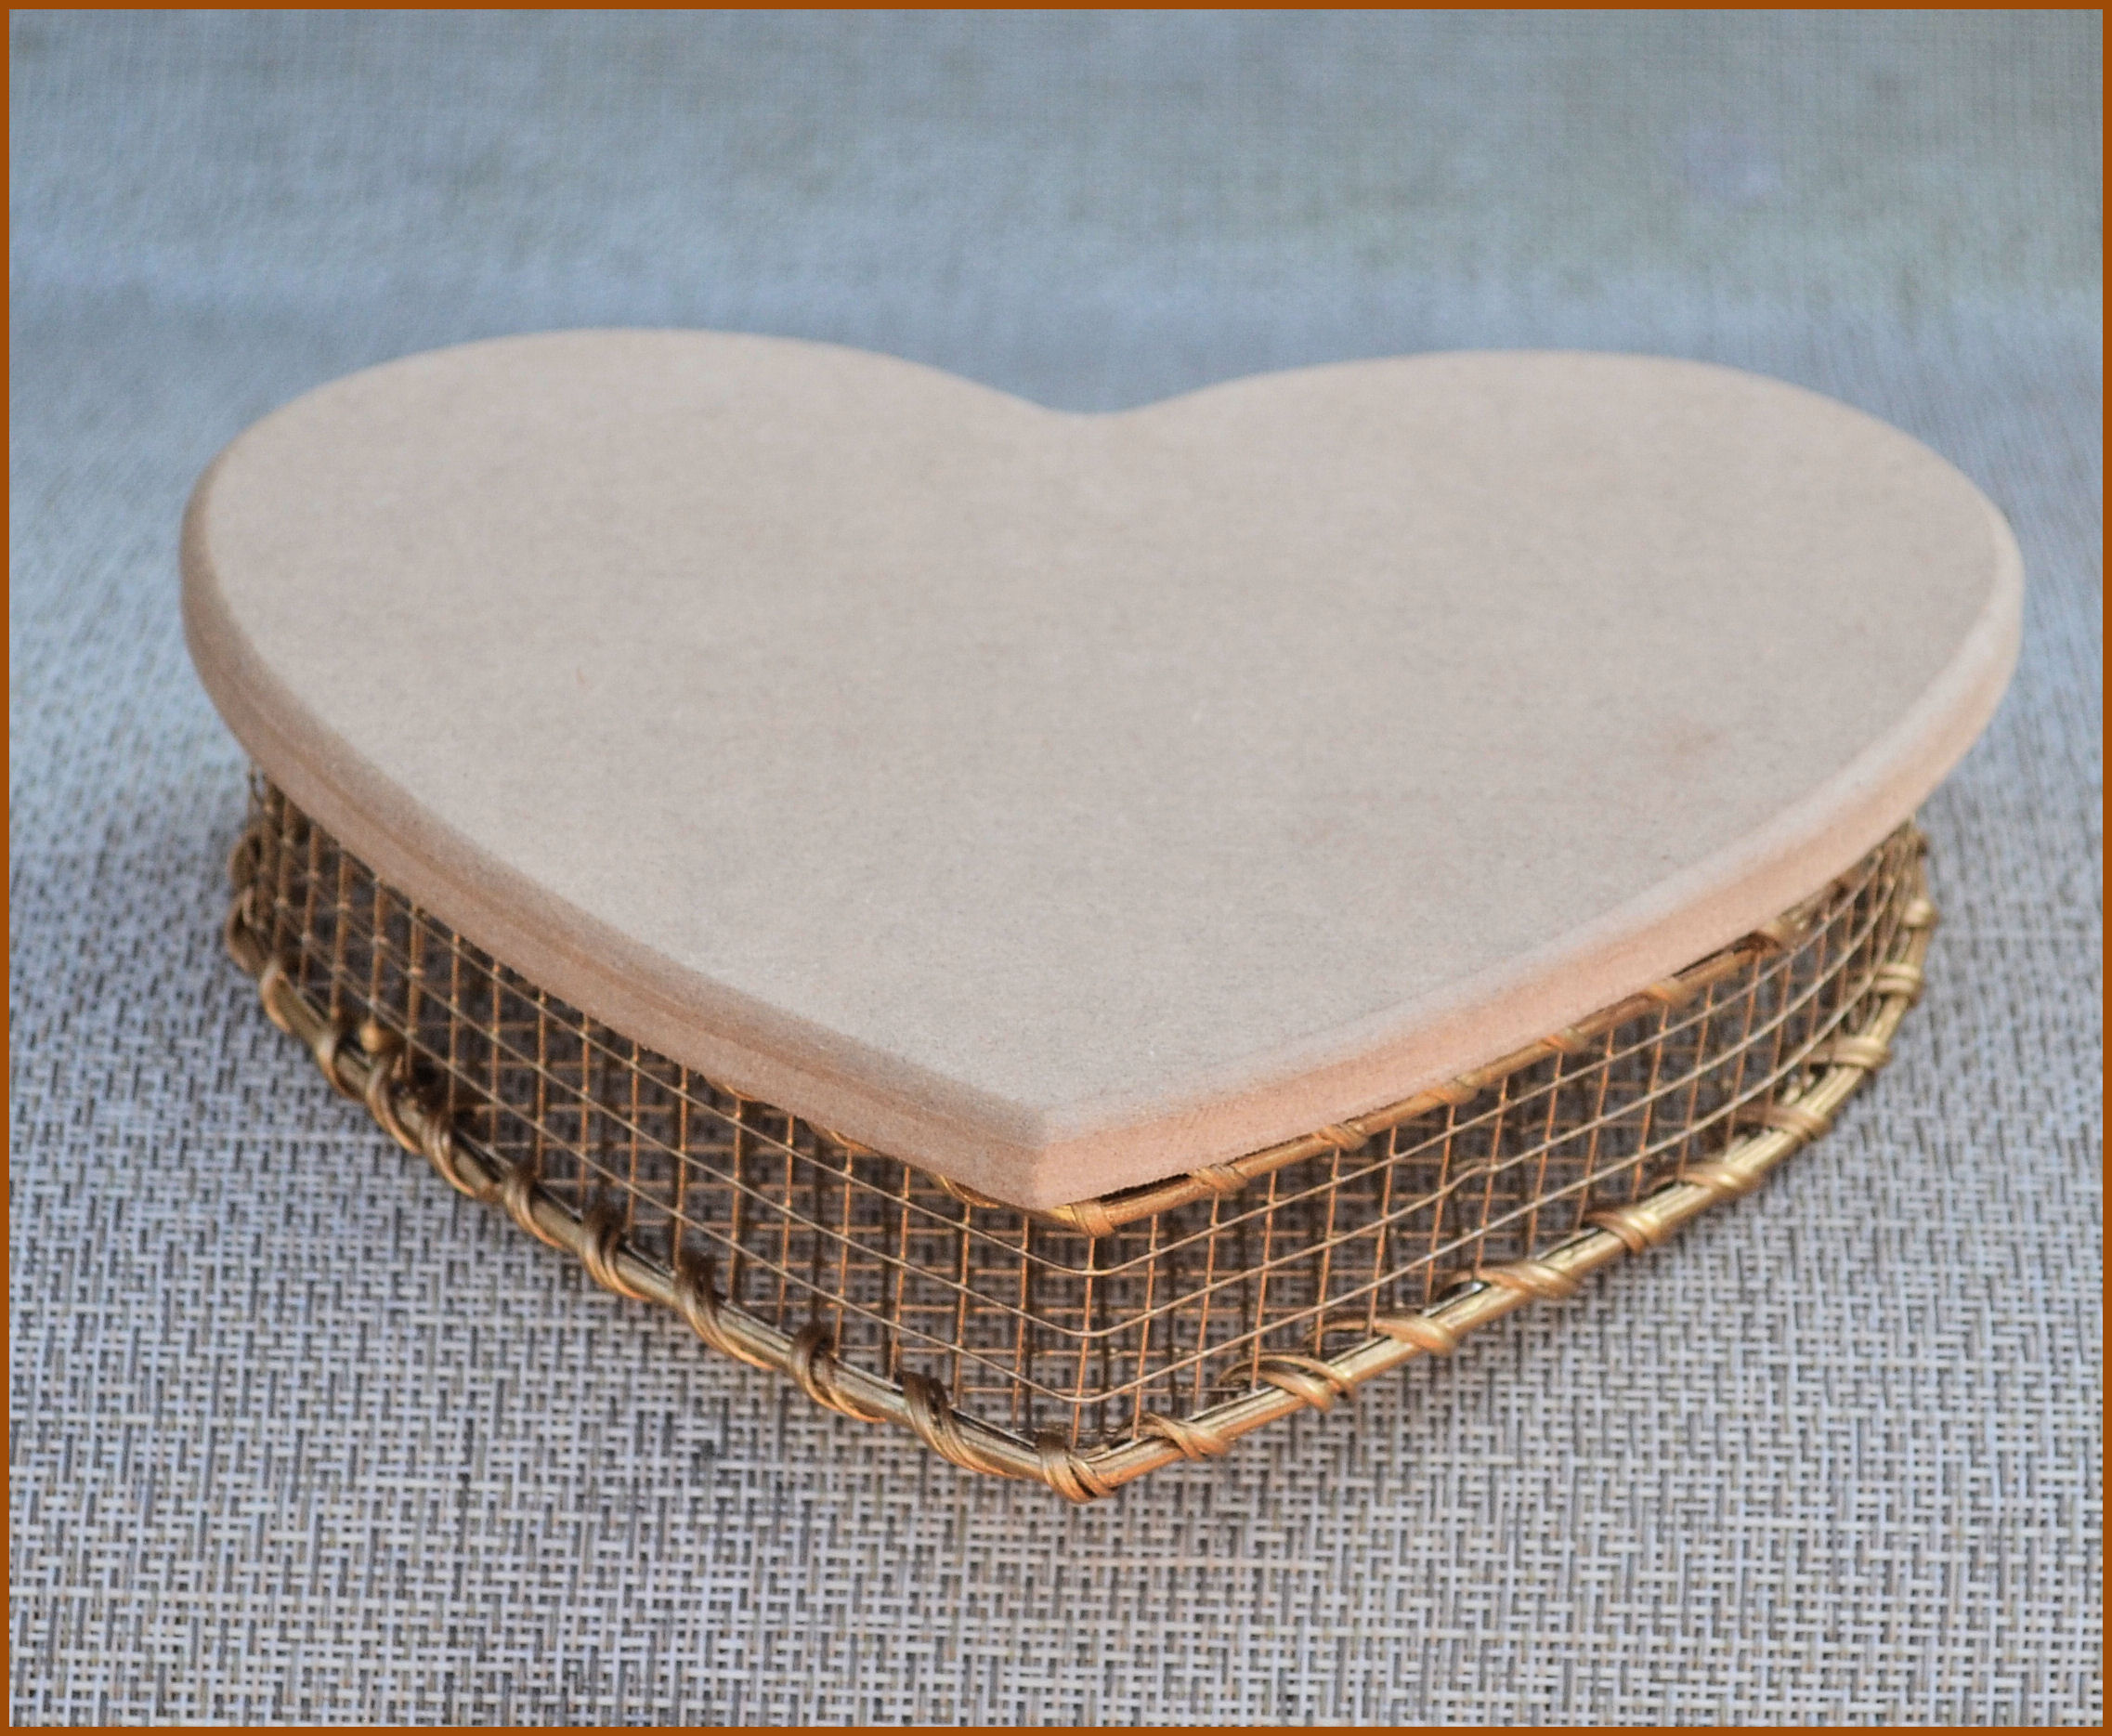 basket-heart-wire-basket-with-lid-118921.jpg